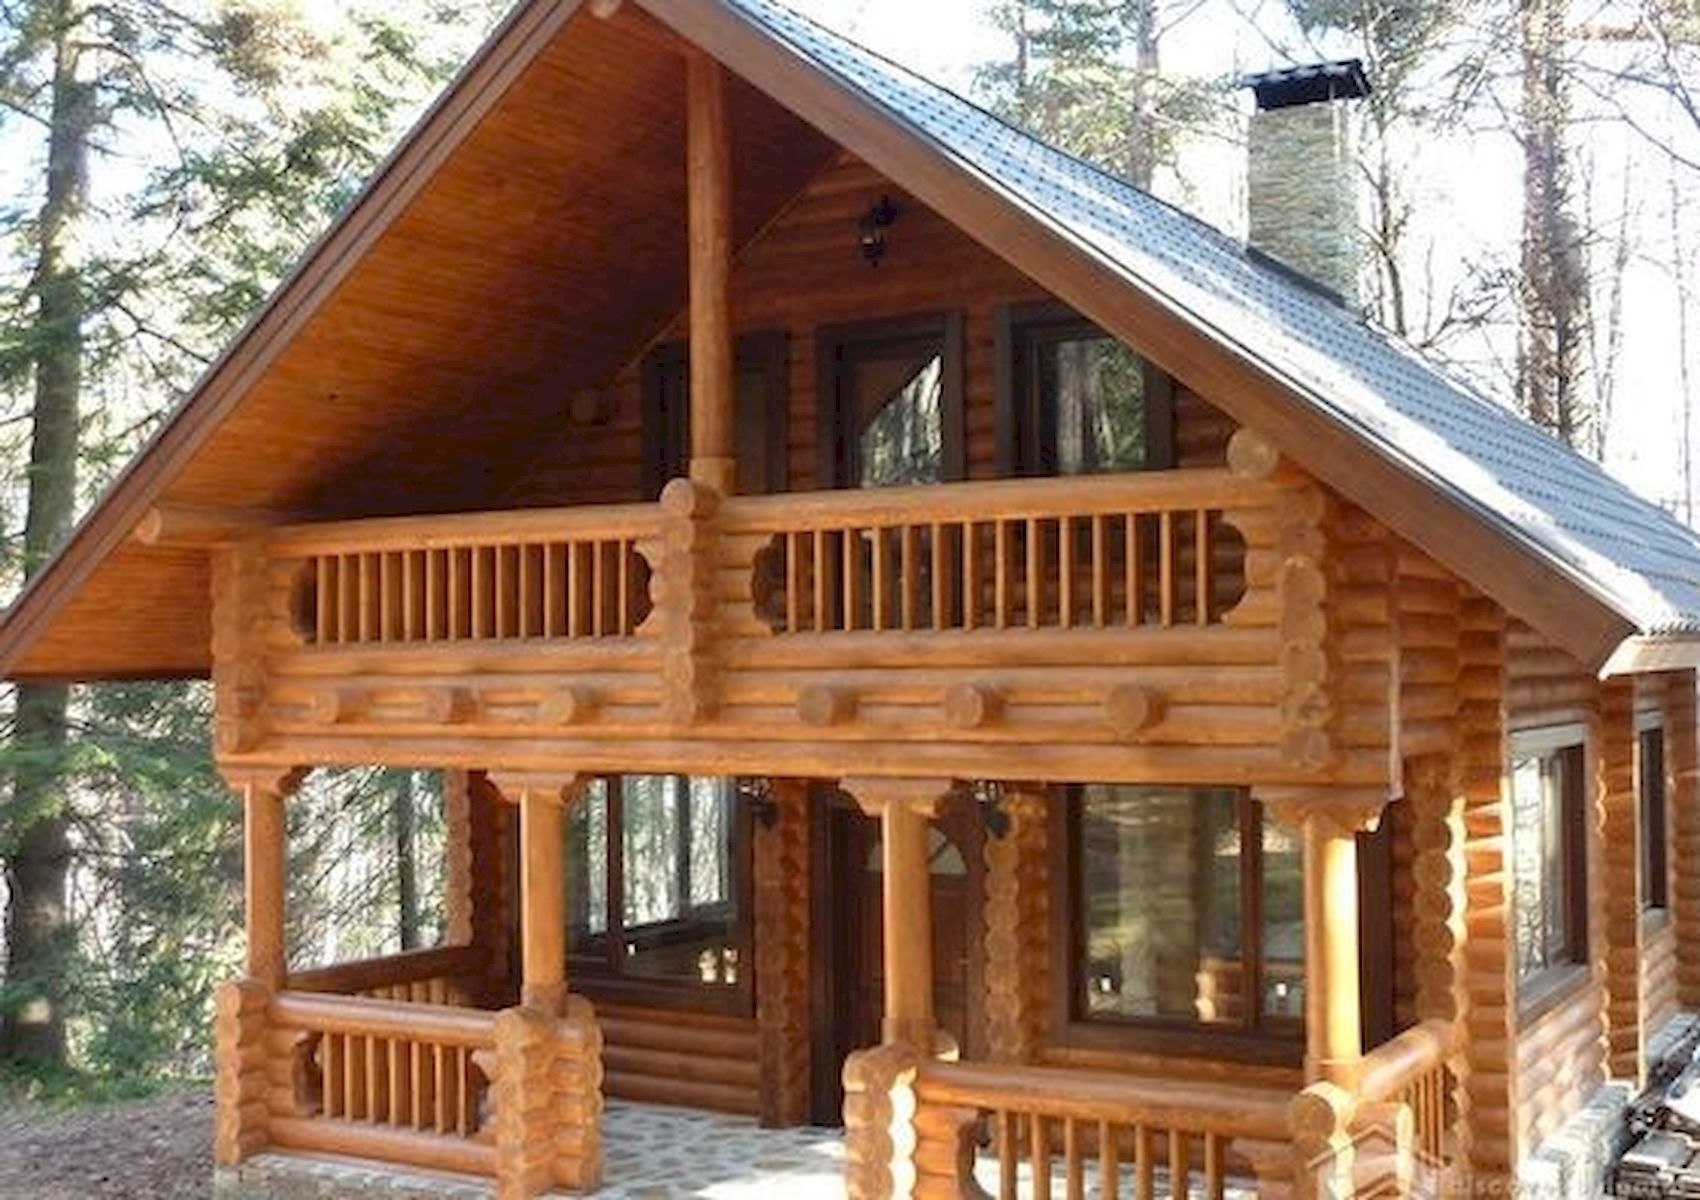 Cool 75 Great Log Cabin Homes Plans Design Ideas Https Livingmarch Com 75 Great Log Cabin Homes Plans Design Ideas Log Cabin Rustic Log Cabin Homes Log Homes